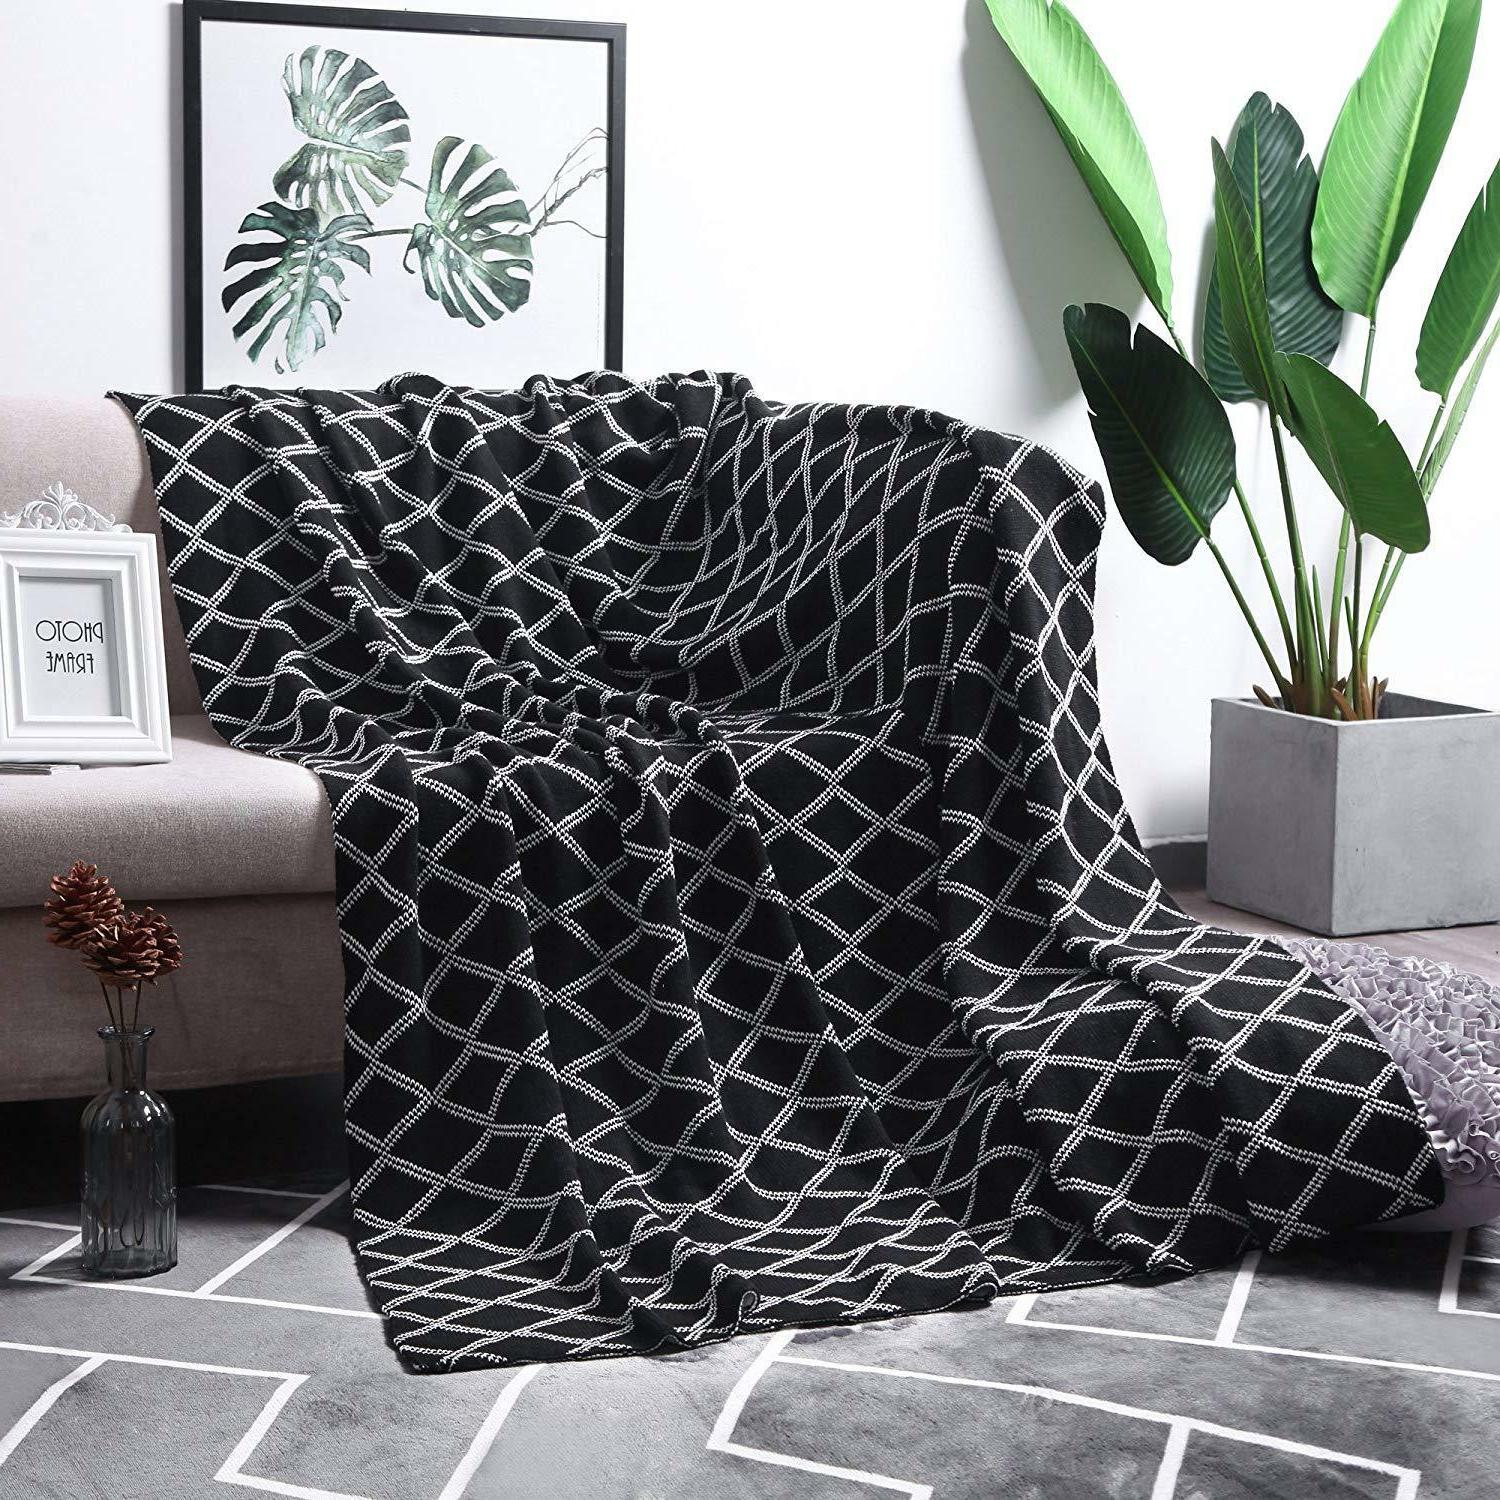 100% Organic Cotton Black Cable Knit Throw Blanket for Couch